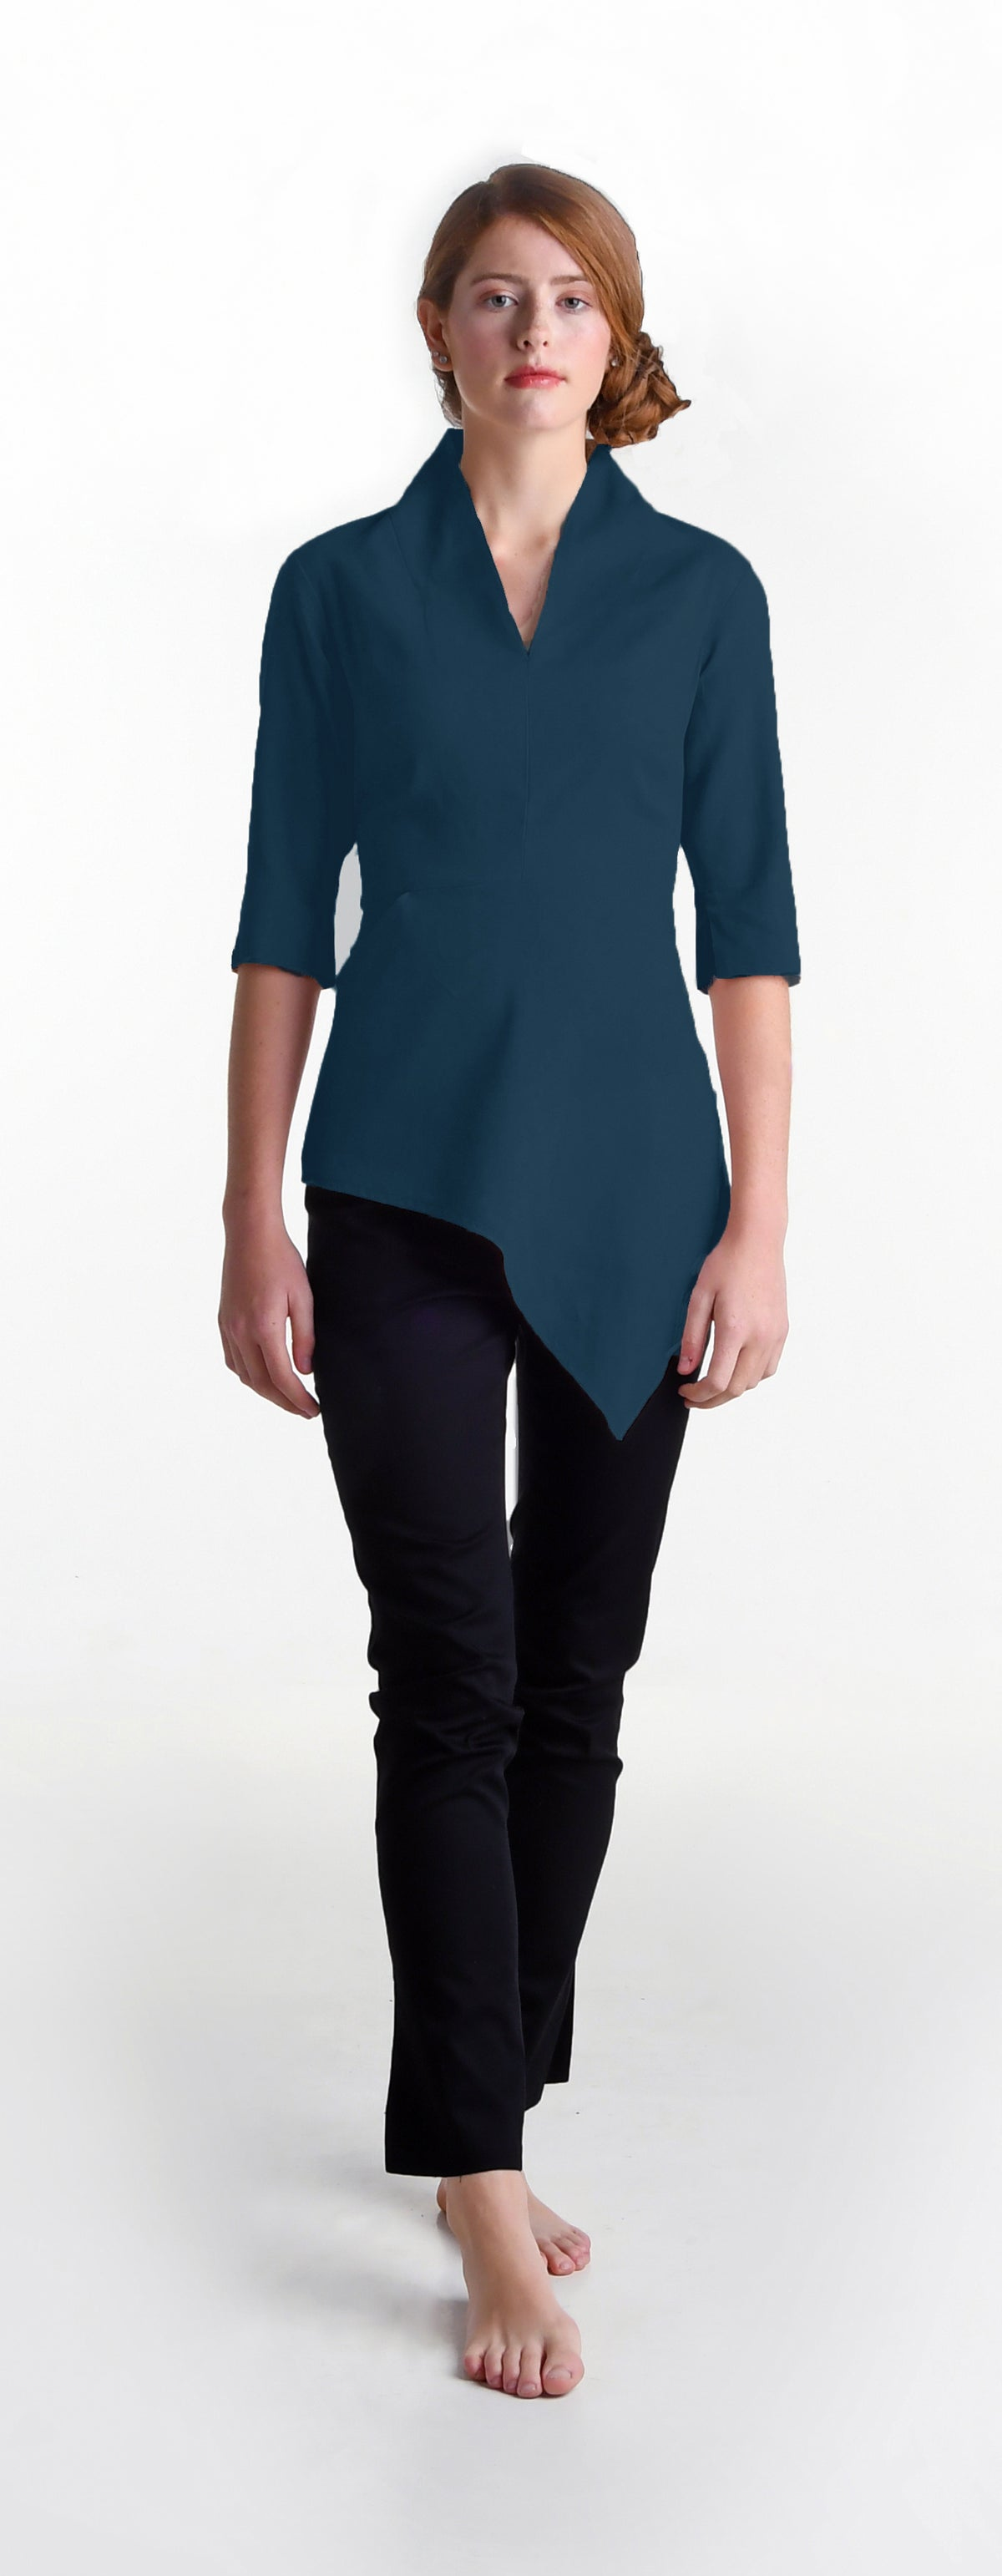 Image of Elmira Cromwell top in teal